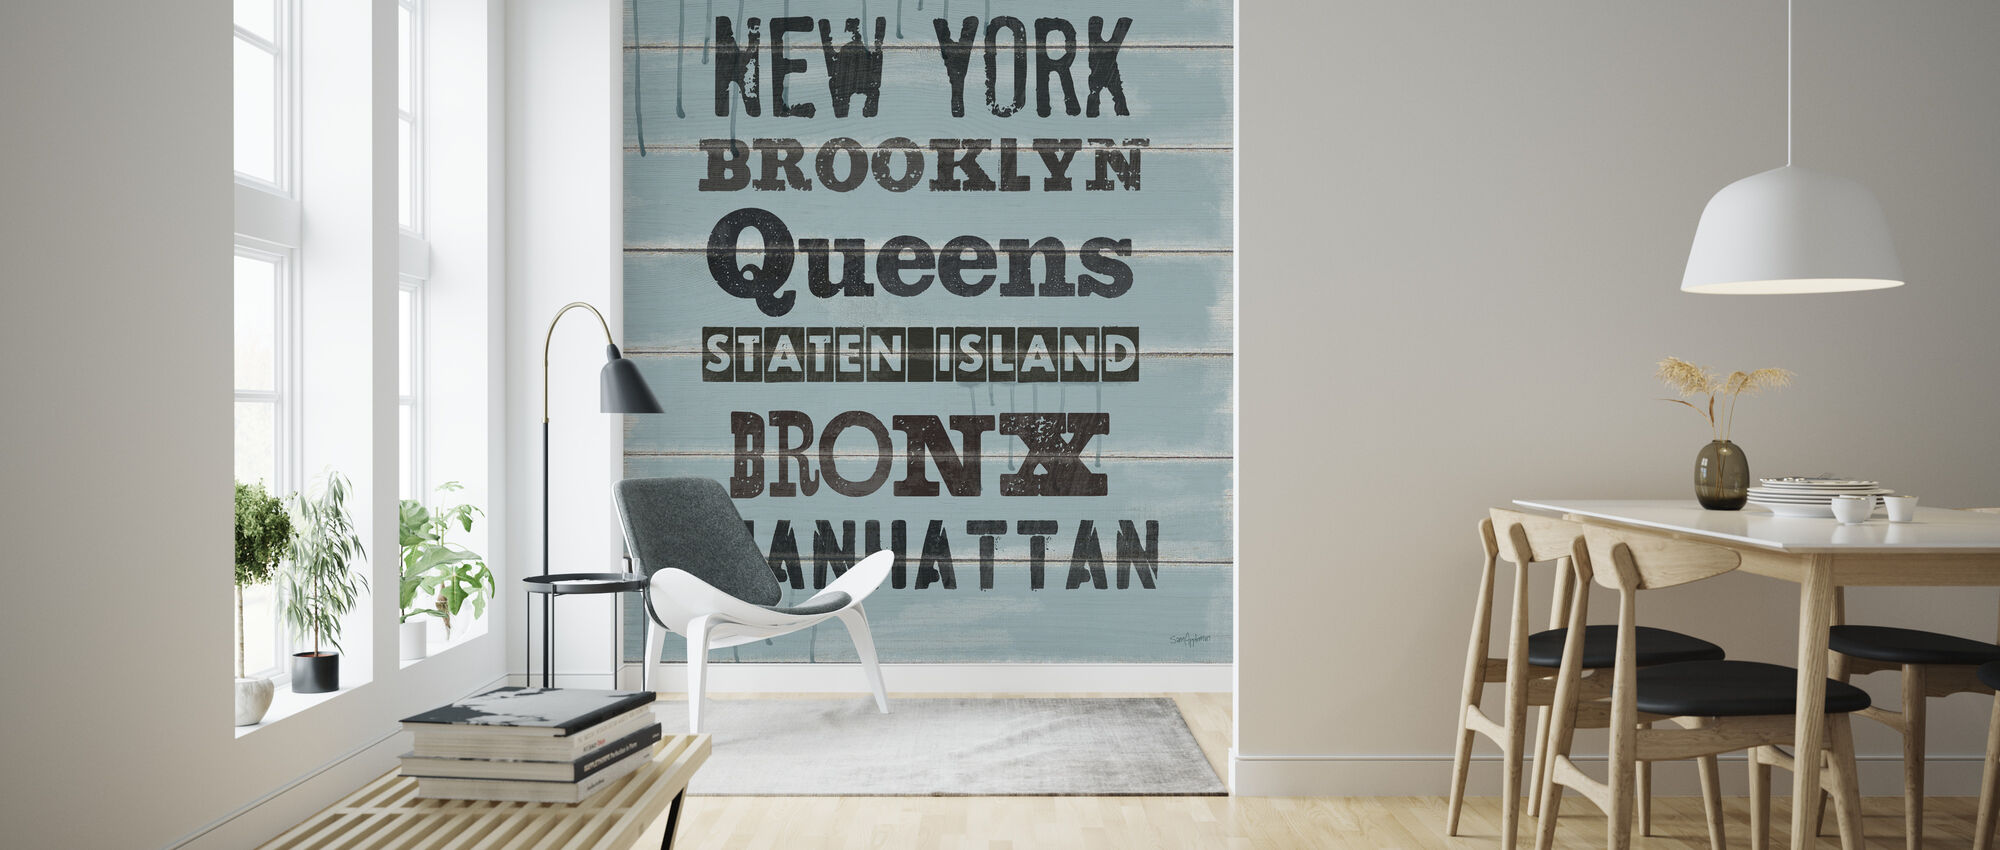 Five Boroughs Painted Cafe - Wallpaper - Living Room